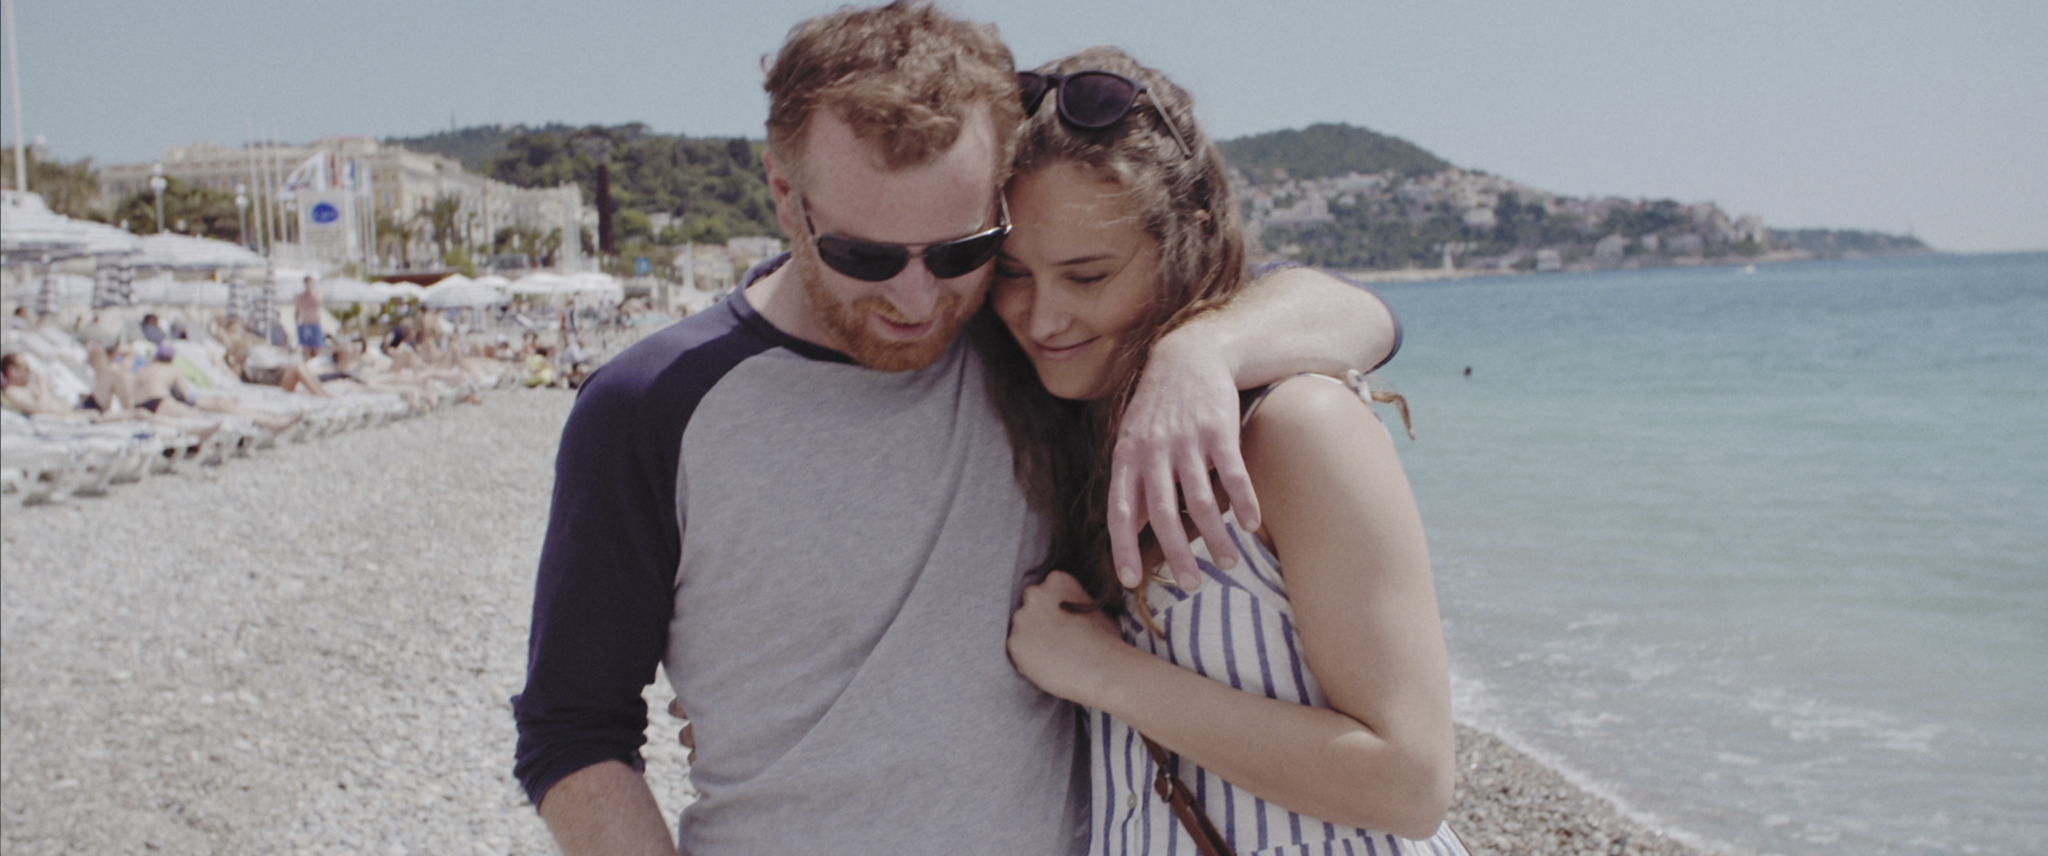 A still from 'Tracks'. Chris Willoughby and April Pearson on the beach in Nice, walking with arms around each other